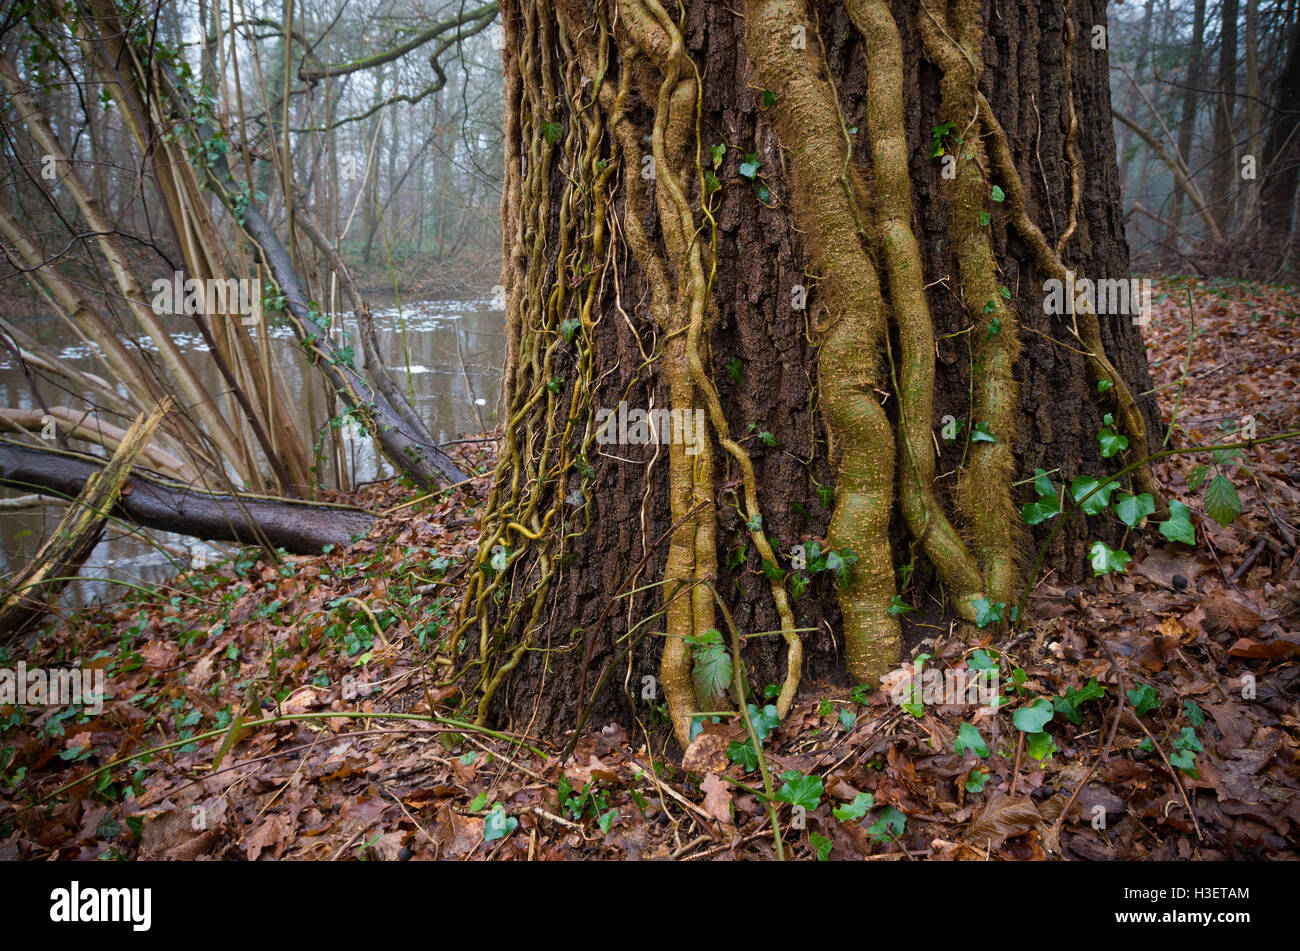 tree covered with ivy lianas in an autumn forest - Stock Image